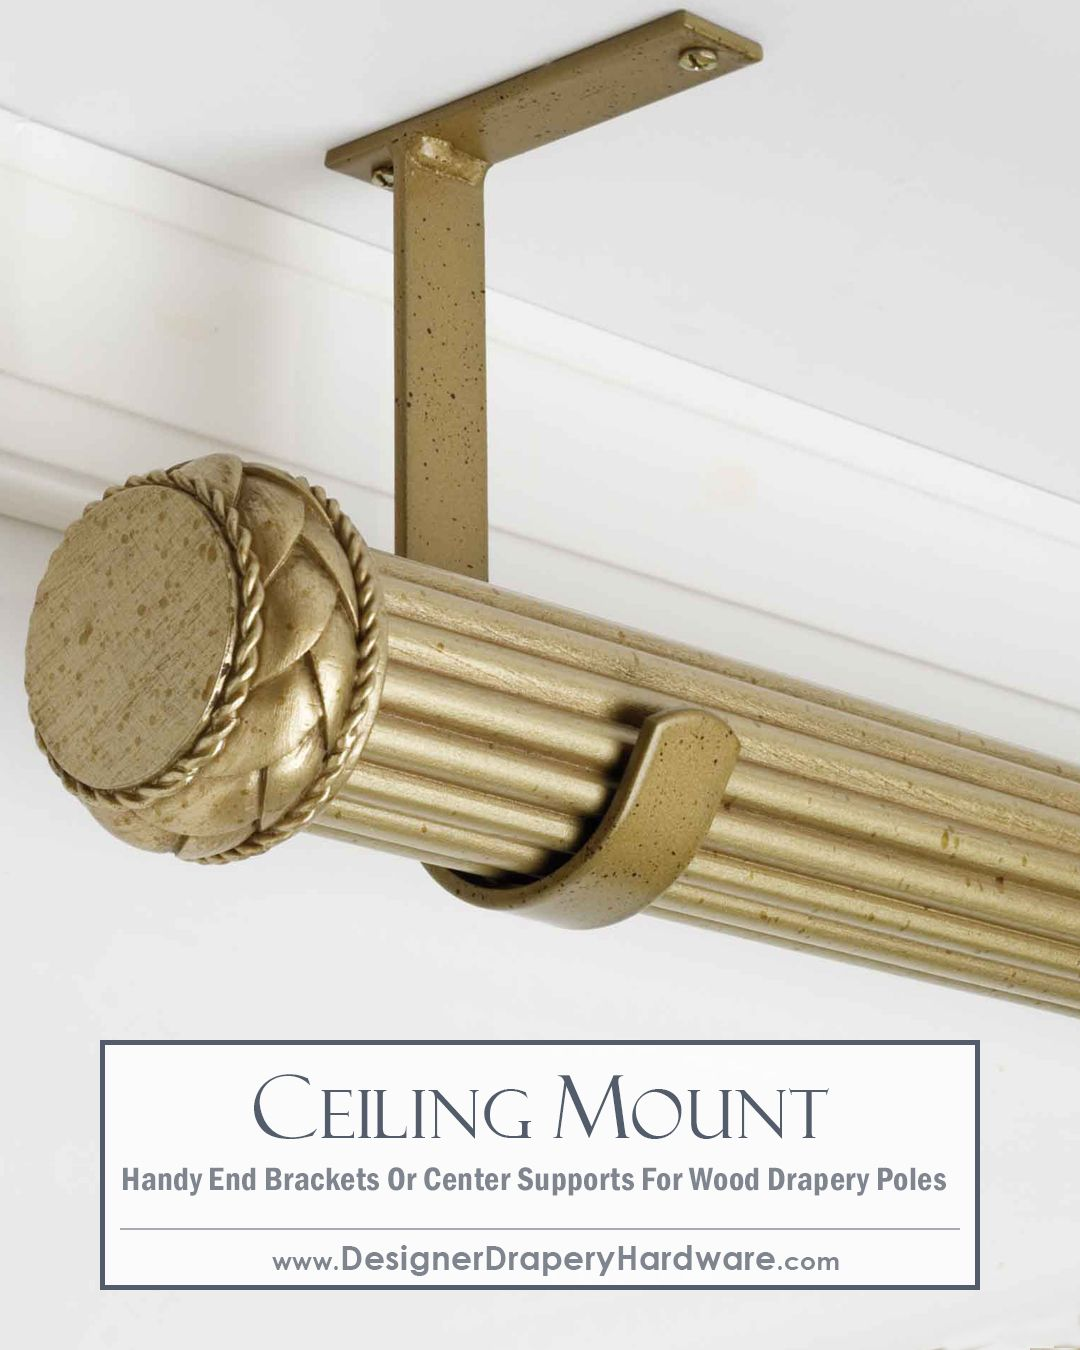 Ceiling Curtain Bracket Simple And Fast Ceiling Mount Installations For Wood